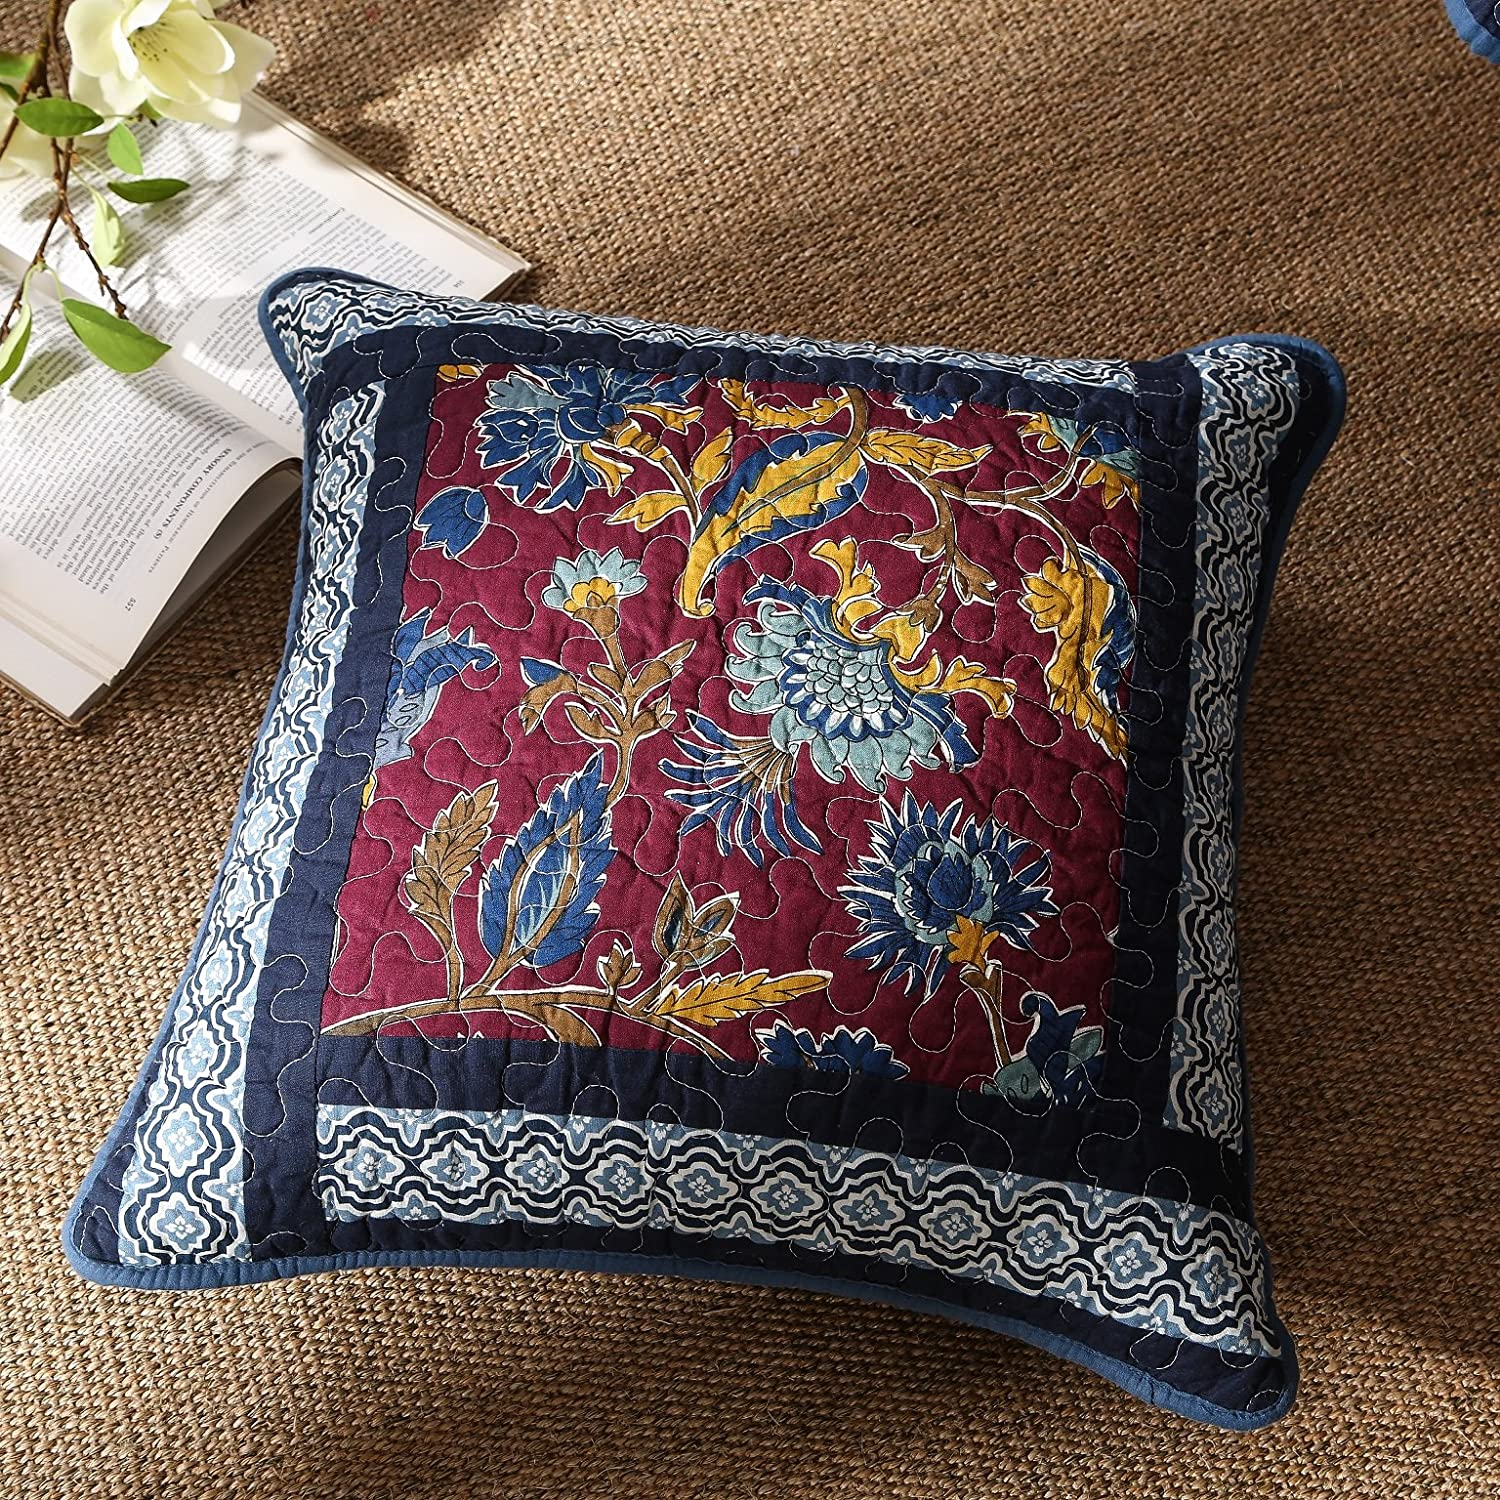 Midnight Ocean Blue Sea Real Patchwork Quilted Accent Pillow Cushion Covers Cases Pair - Dark Navy Floral Multi-Color Print